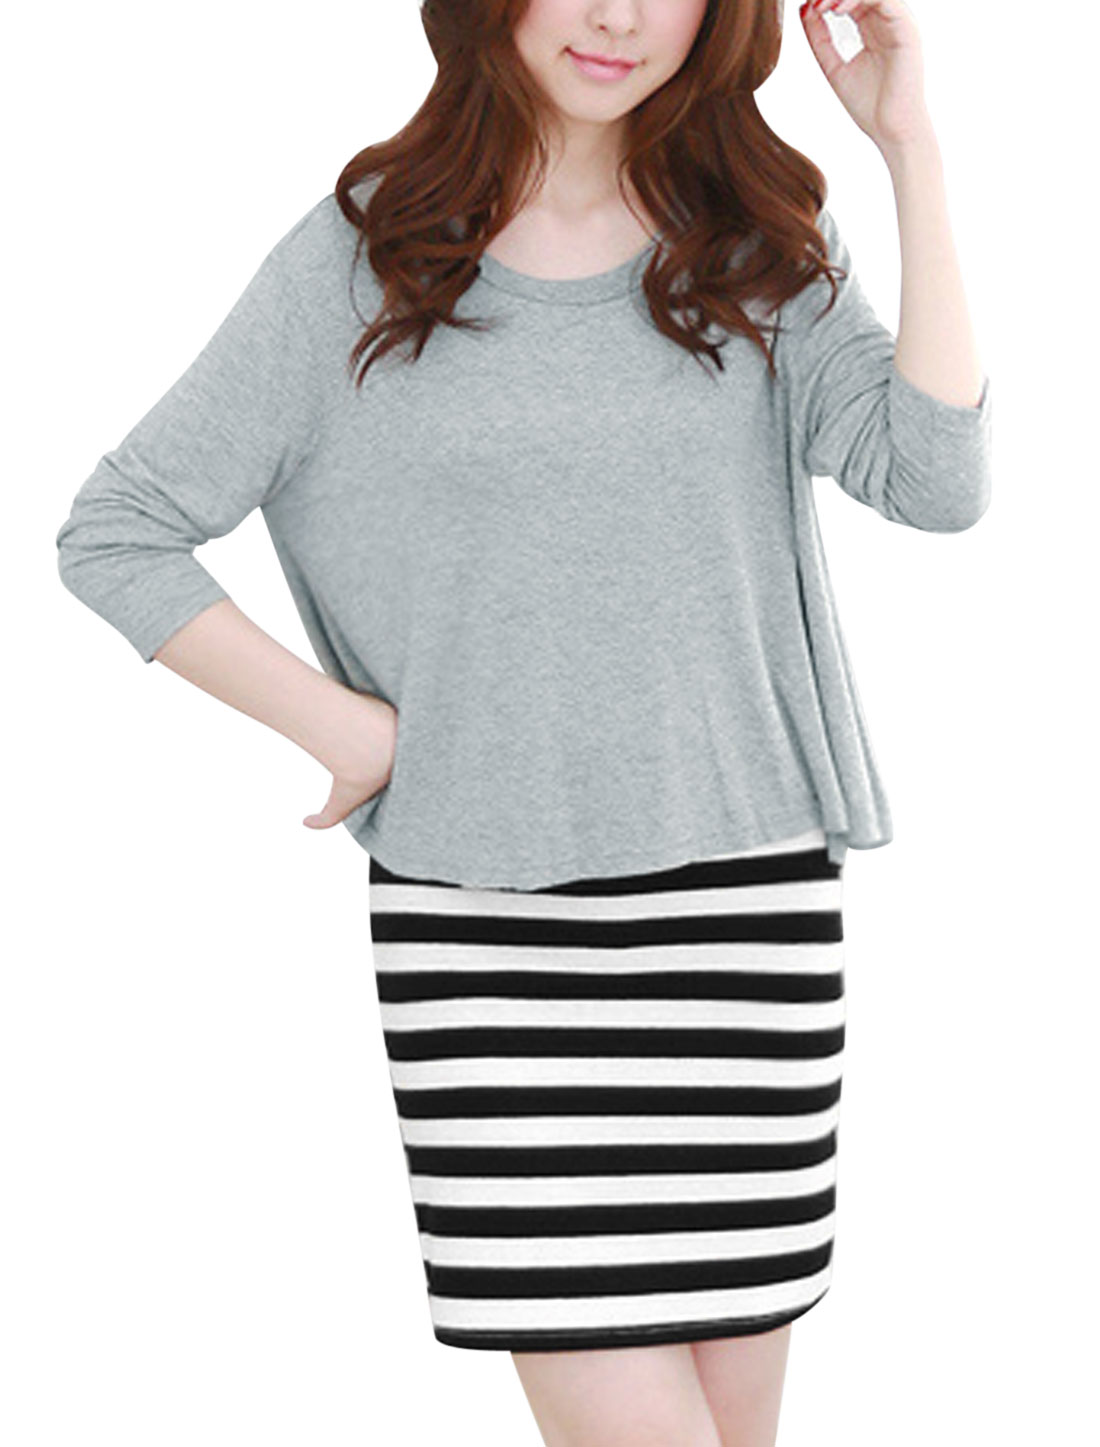 Ladies Light Gray Round Neck Long Sleeves Top w Pullover Stripes Dress S